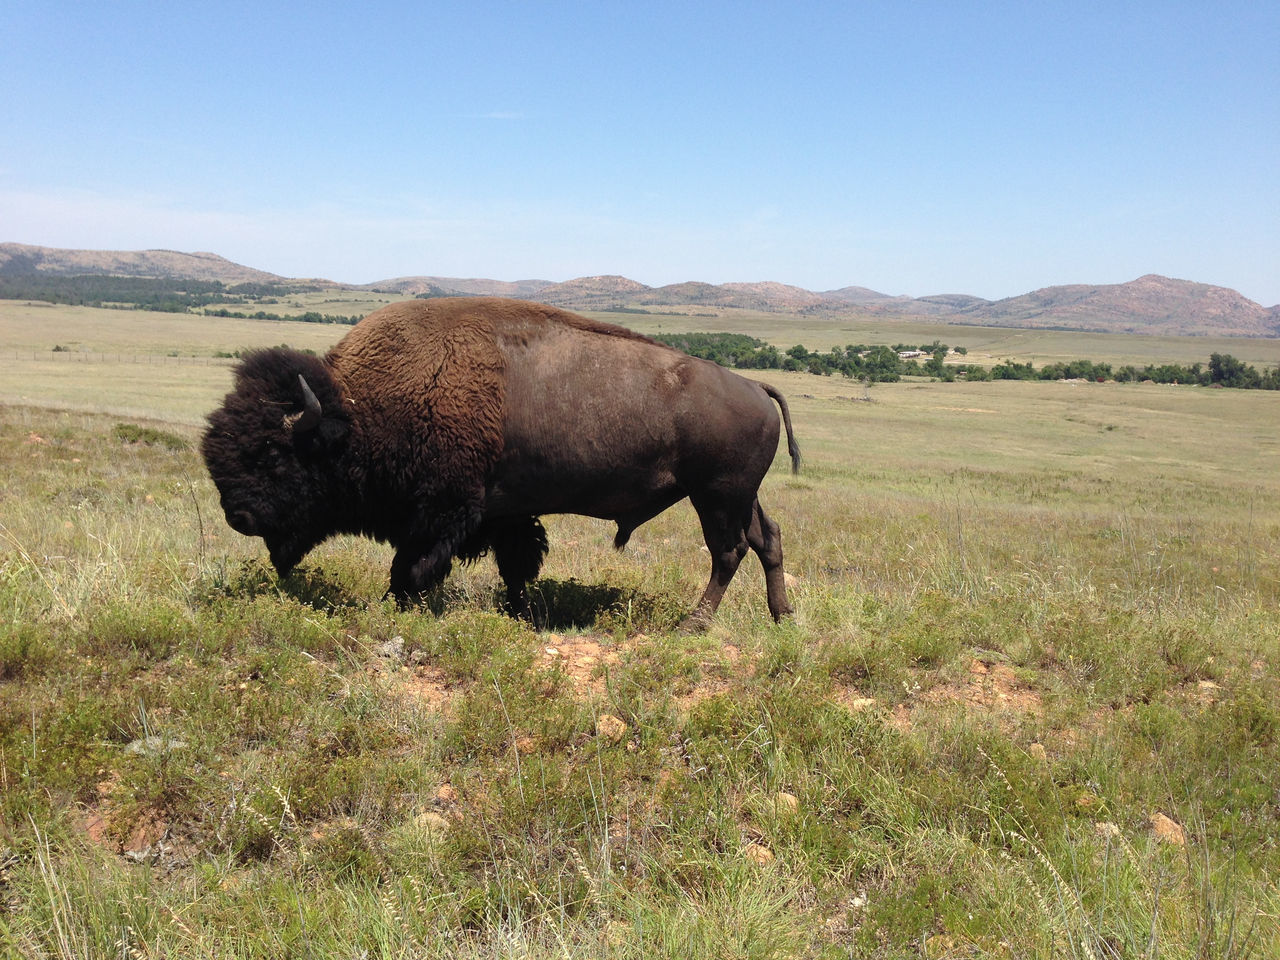 one animal, animal themes, mammal, field, landscape, nature, grass, bull, no people, animals in the wild, beauty in nature, outdoors, day, domestic animals, american bison